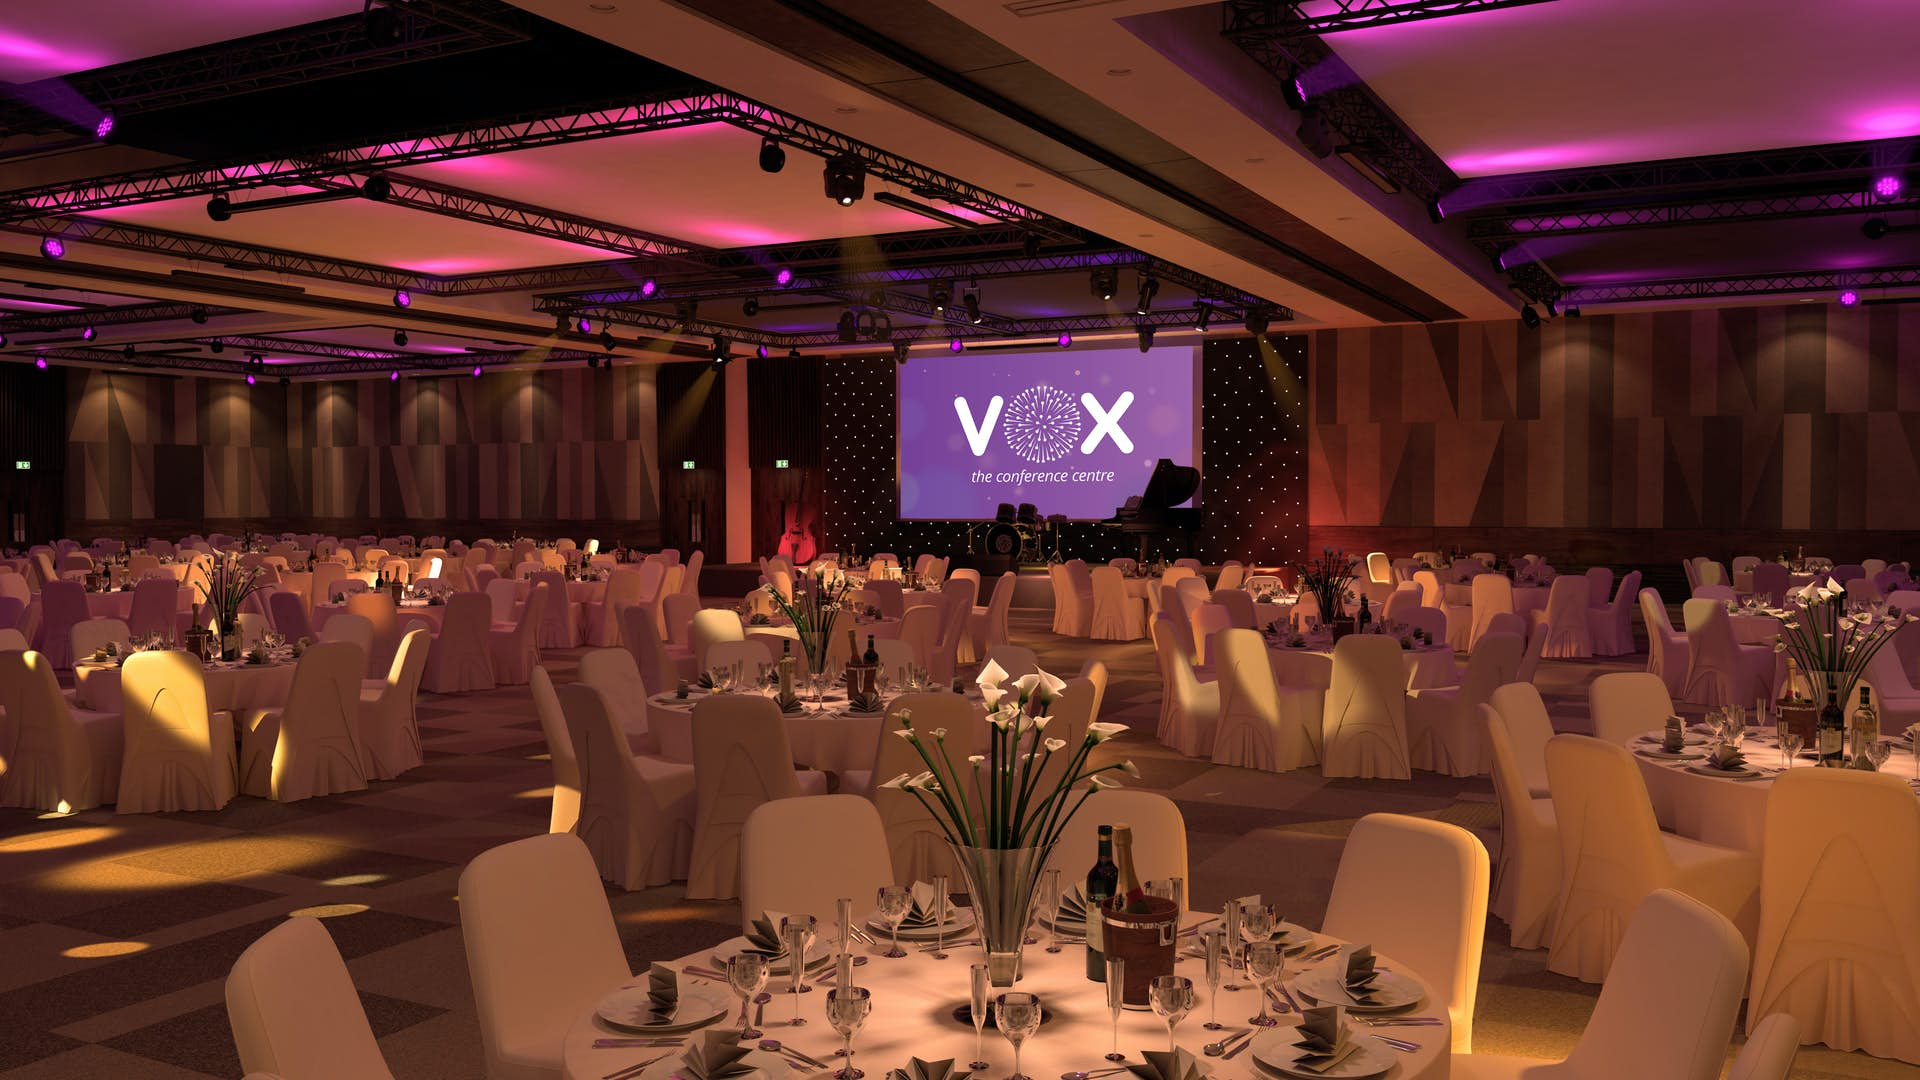 Vox Weddings The Vox Conference Centre - Vox conference table